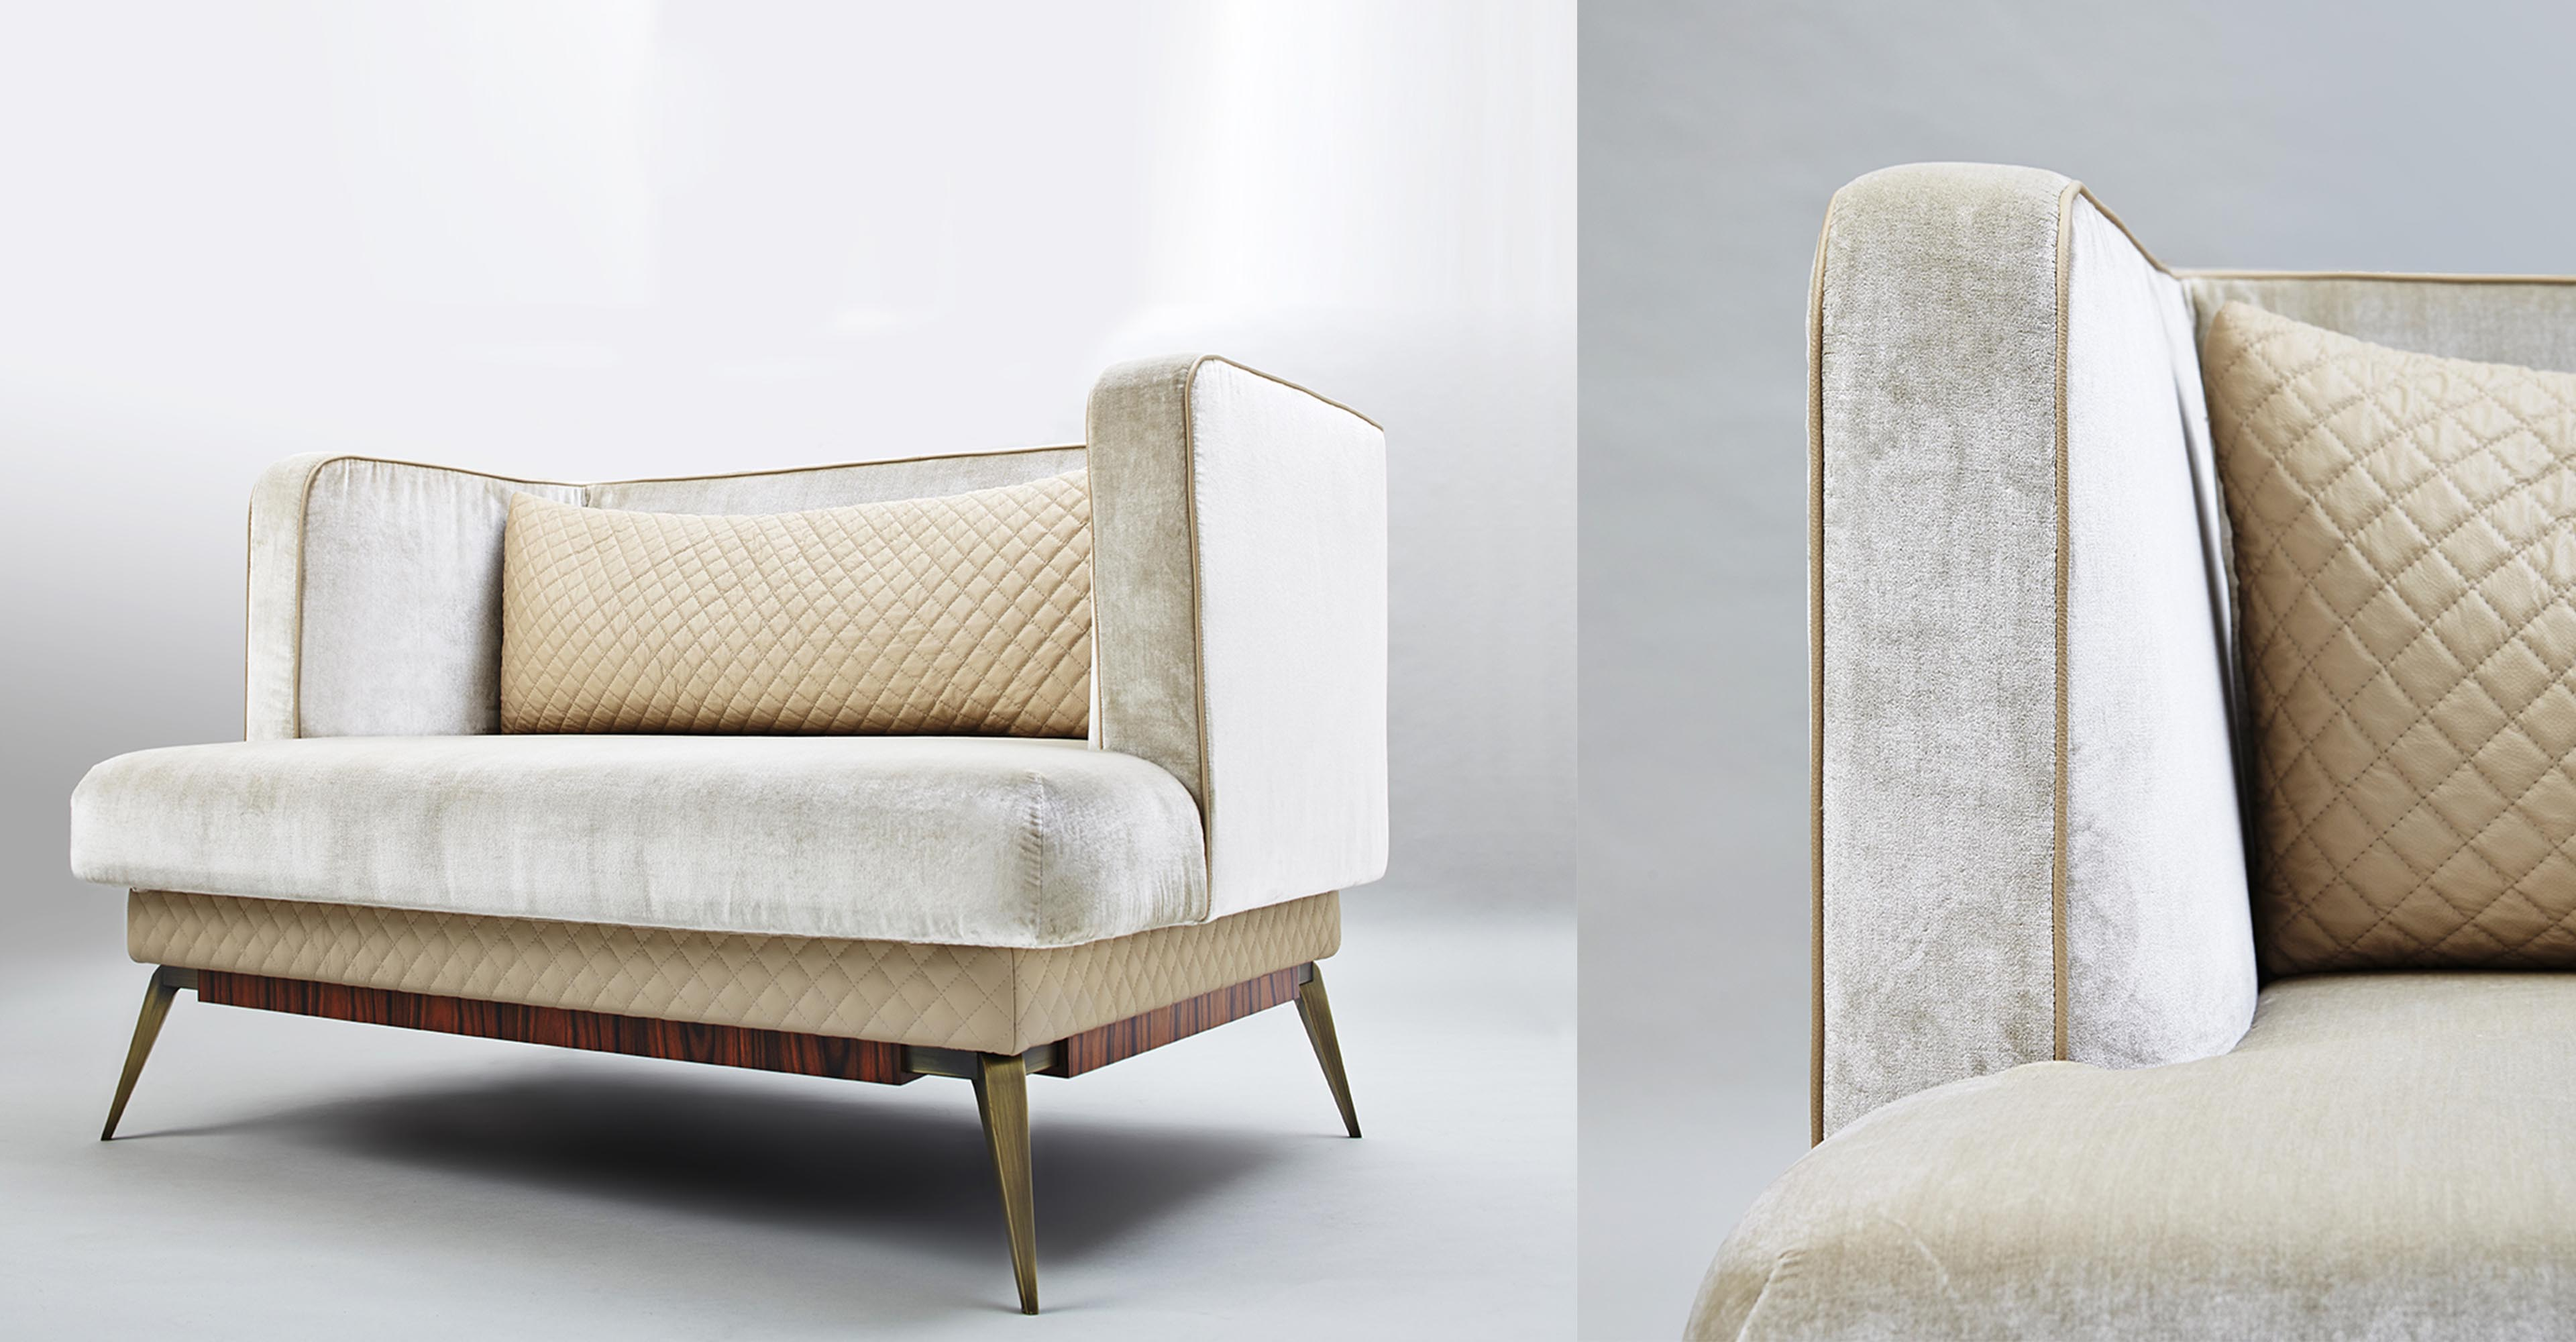 Victoria - Armchair made in Italy by Rossato